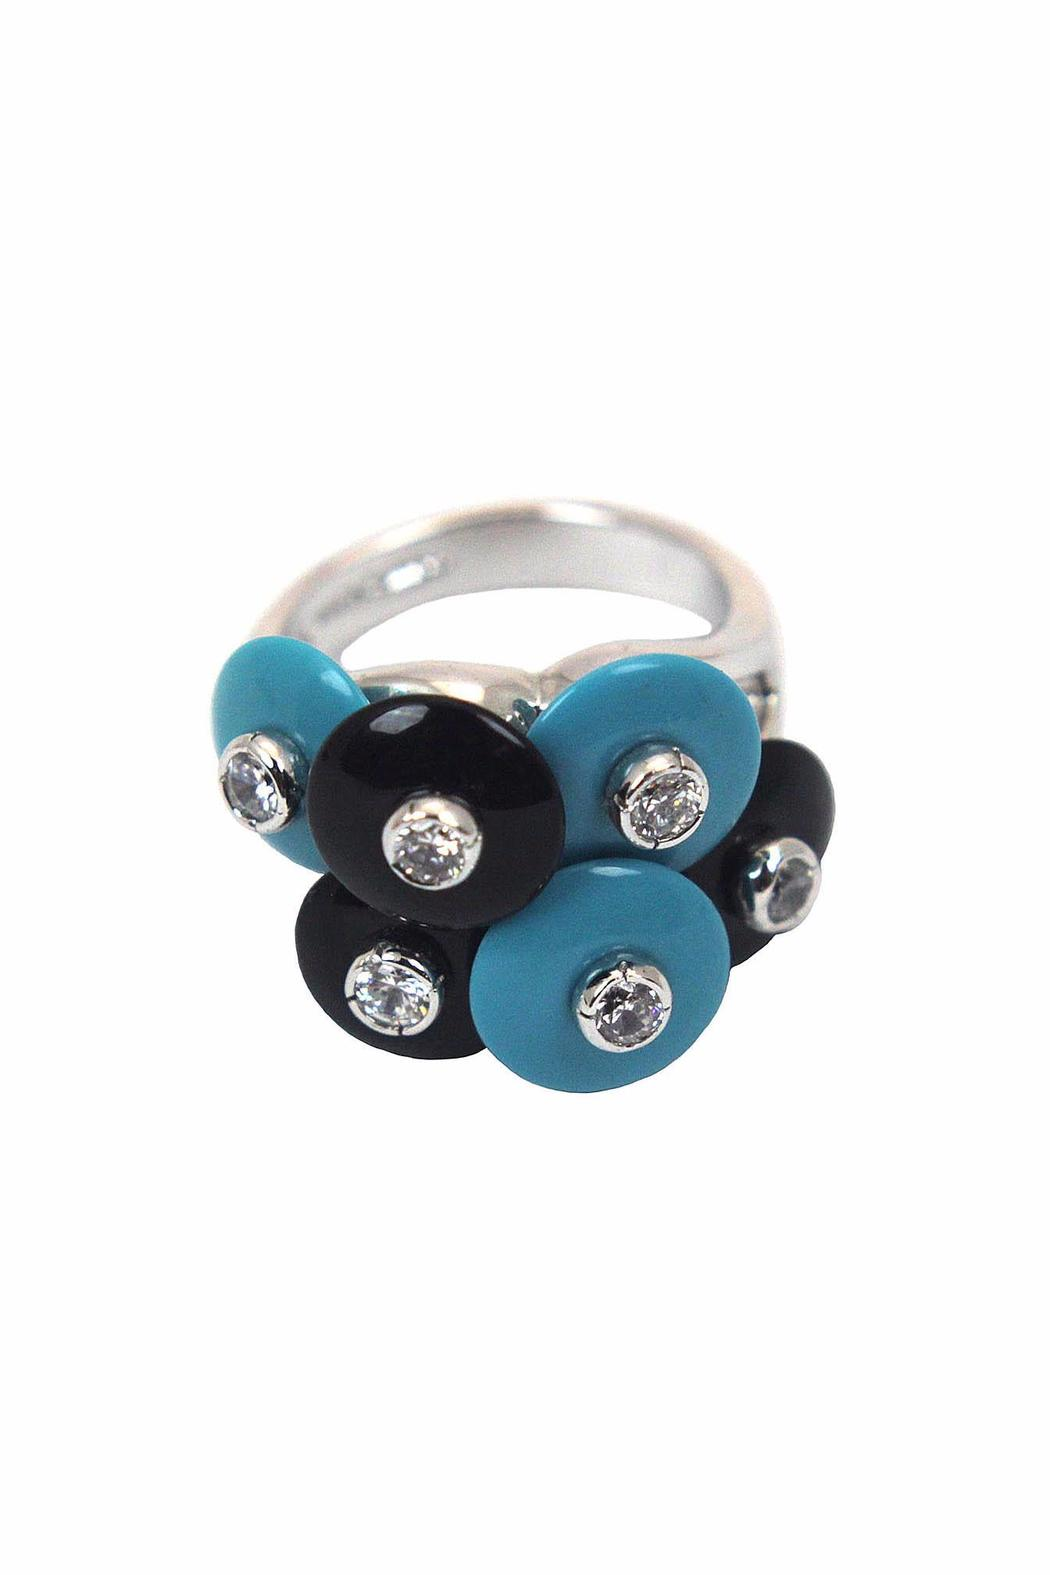 Popular Design, Inc. Turquoise & Onyx Ring - Main Image